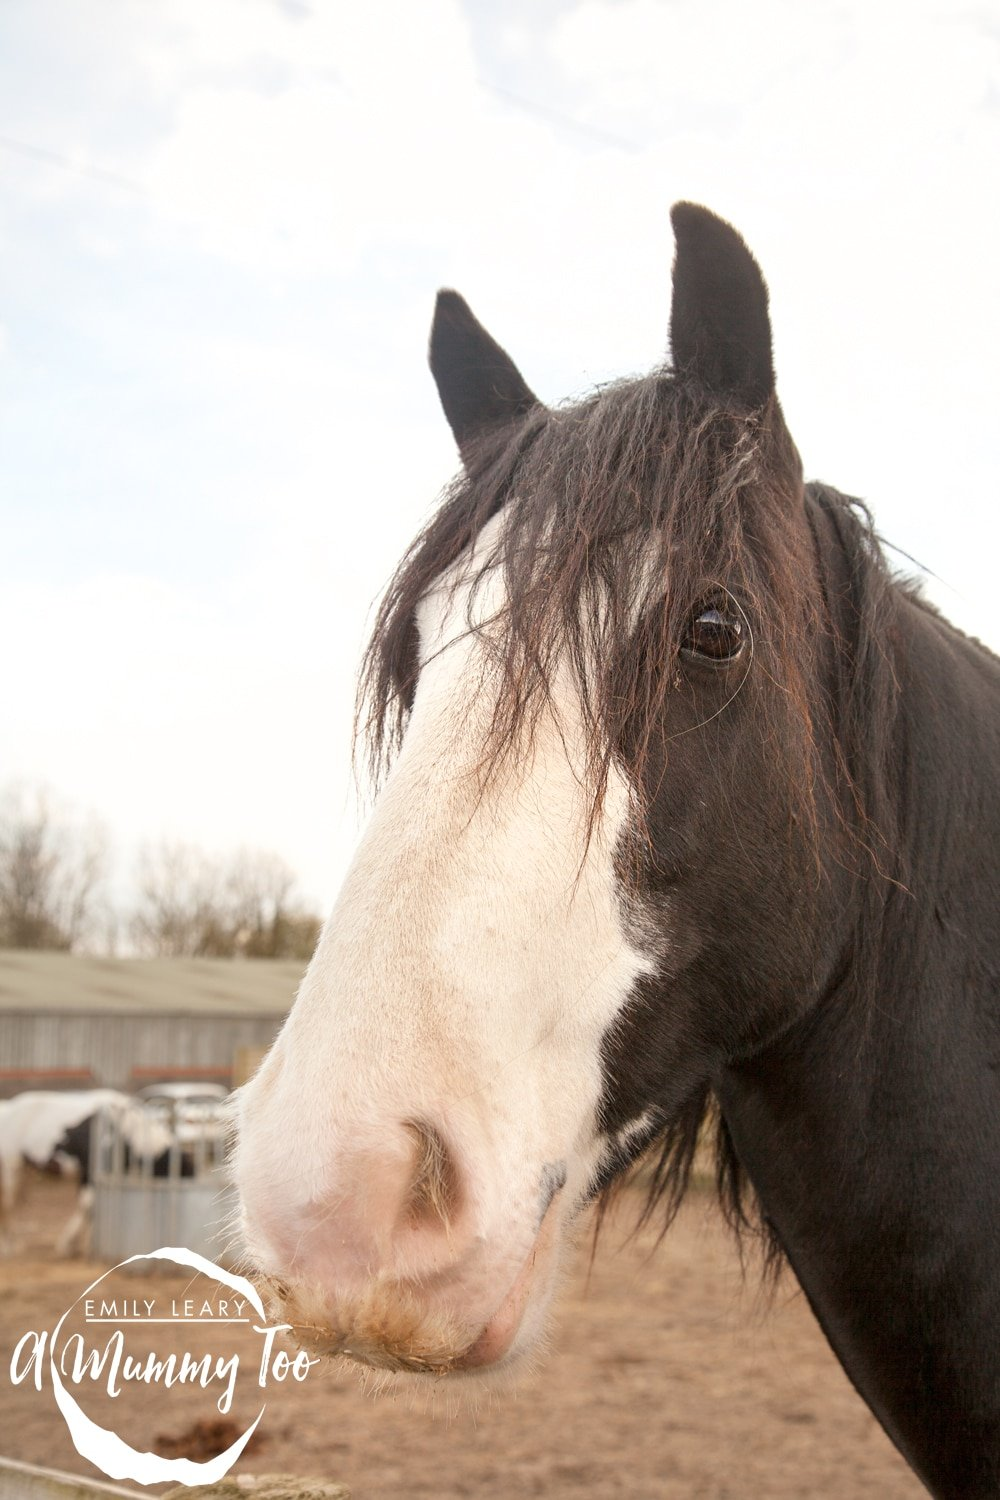 bransby-brown-and-white-horse